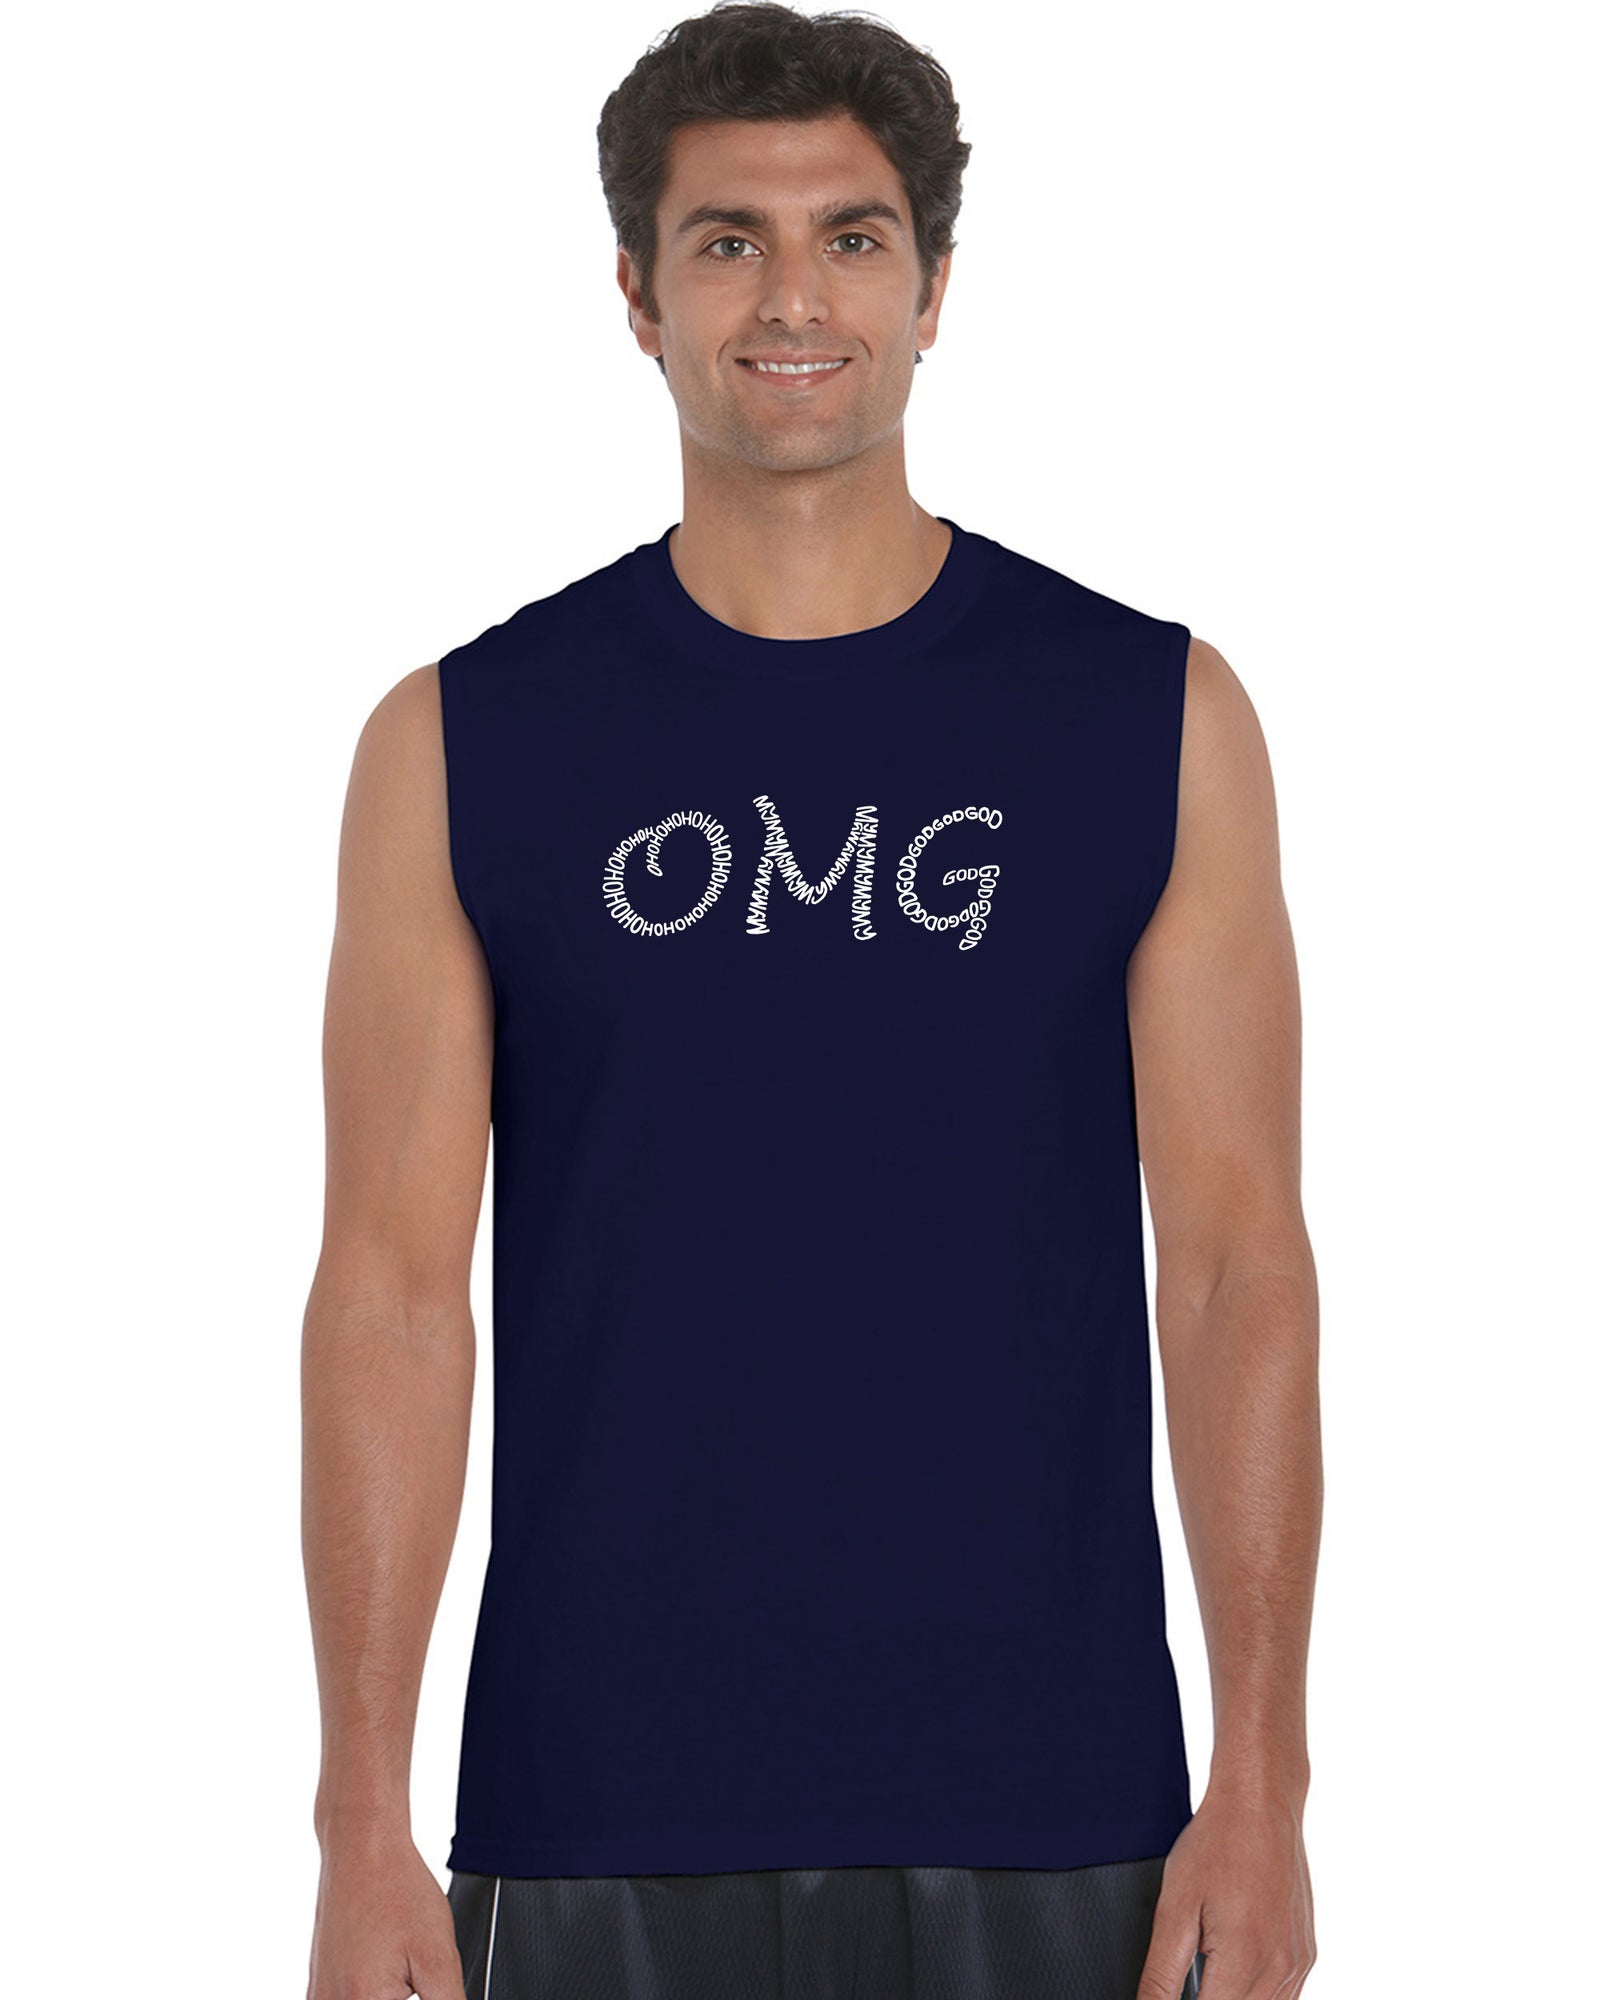 Men's Sleeveless T-shirt - OMG